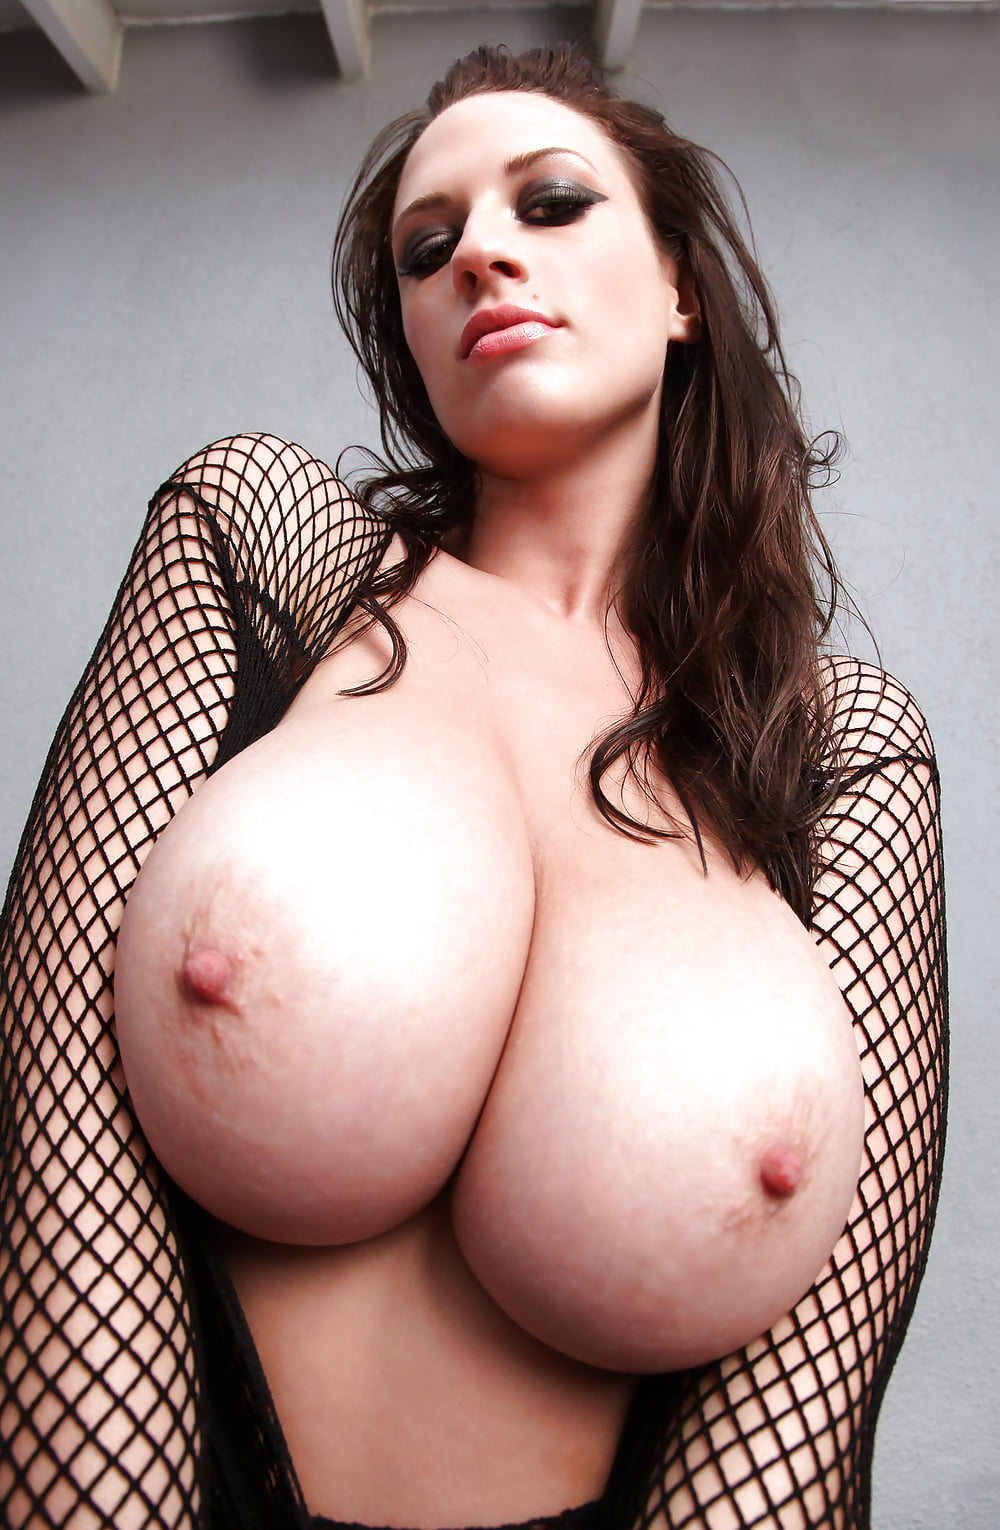 Savannah sixx with gorgeous breasts and voluptuous ass